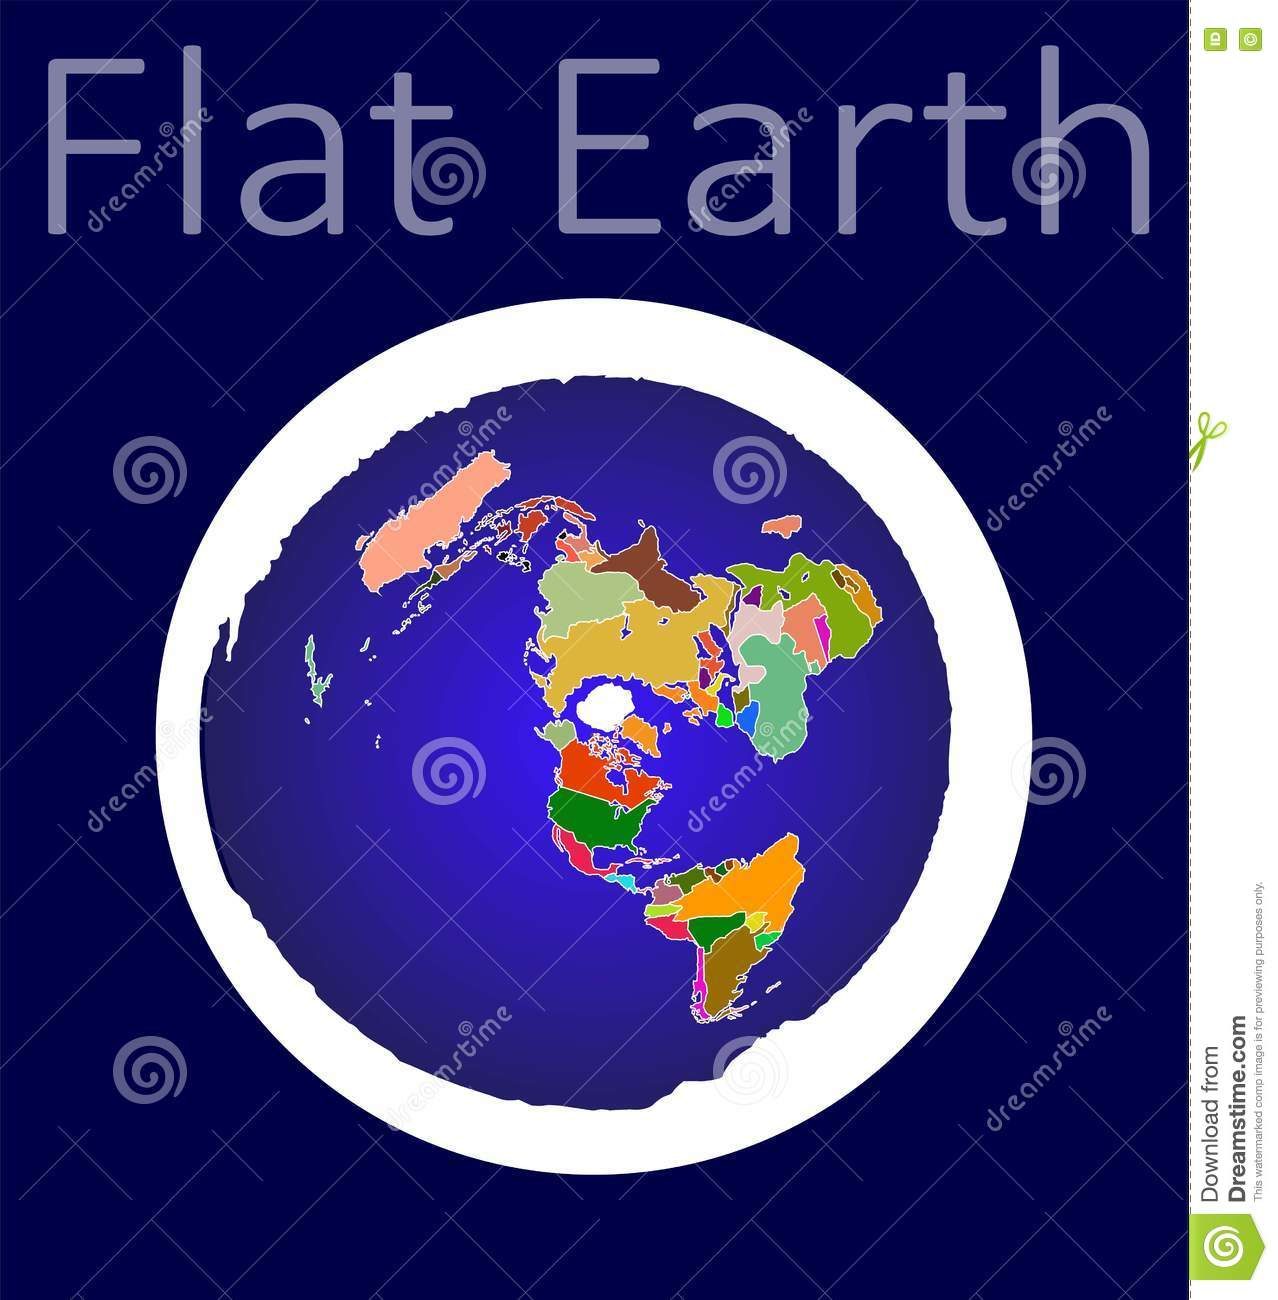 Official Flat Earth Map.Flat Earth Map Stock Vector Illustration Of Vector Flat 76007862